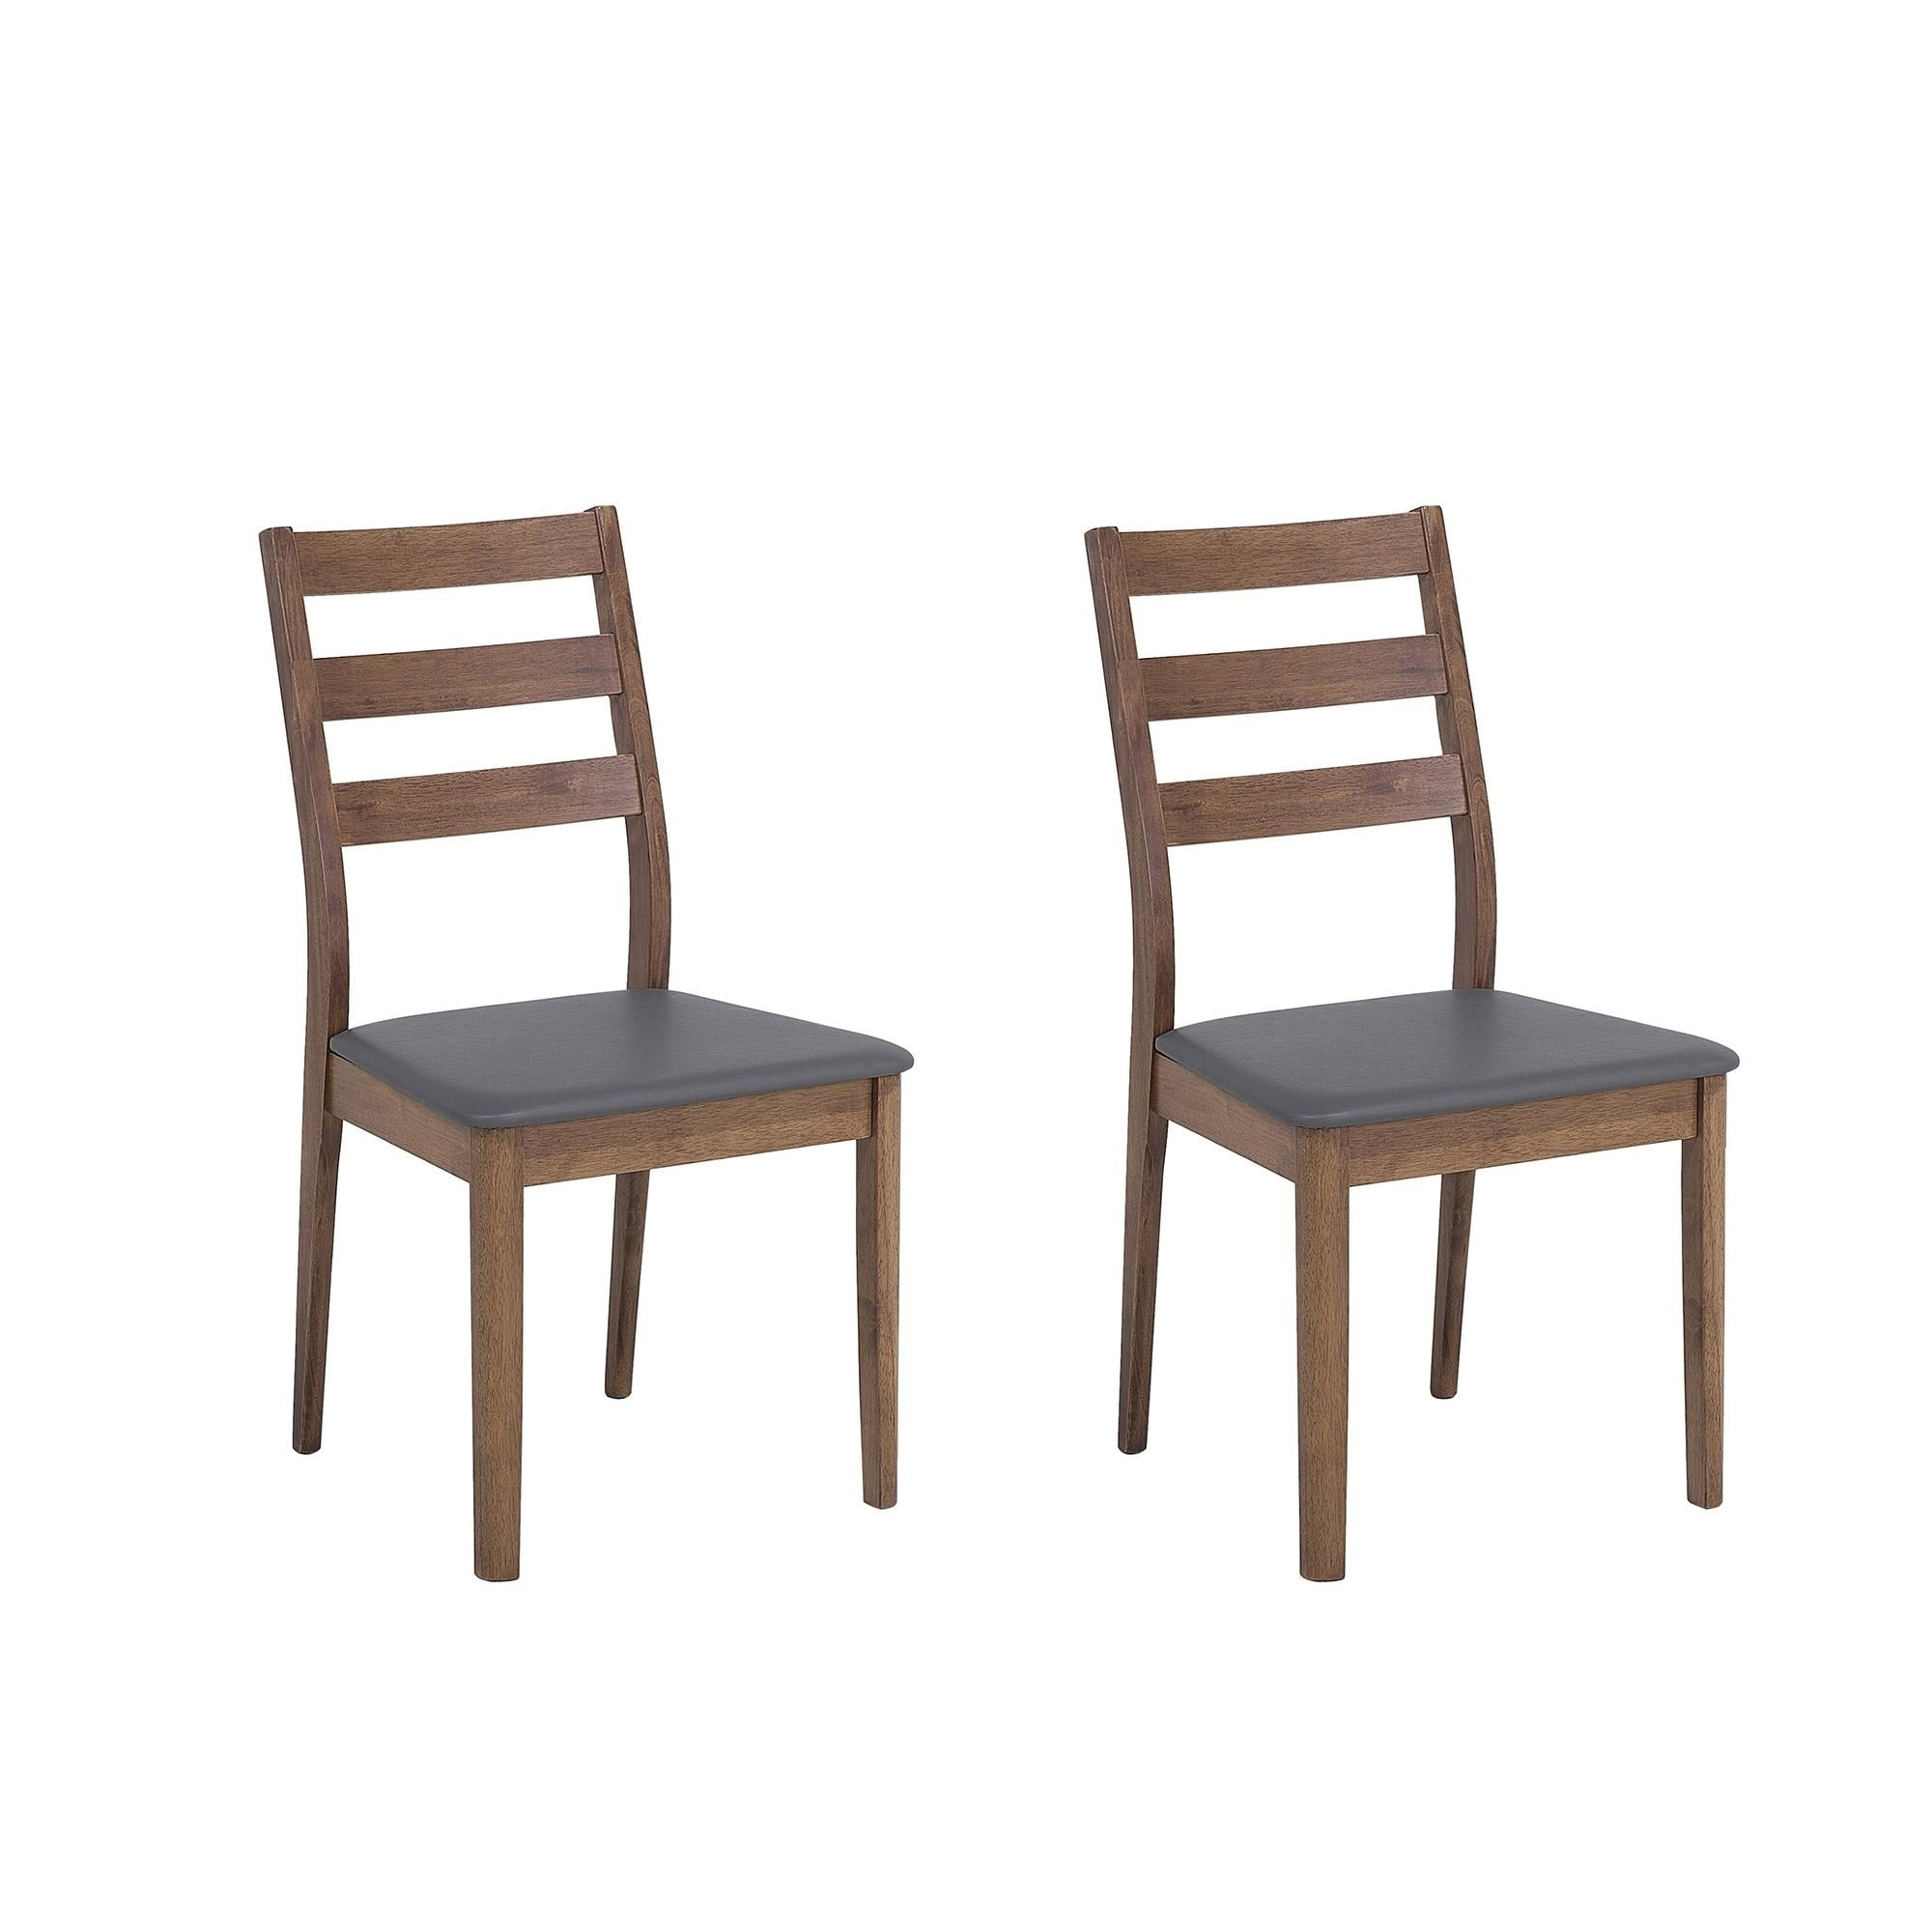 Set of 2 dining chairs rubberwood modesto